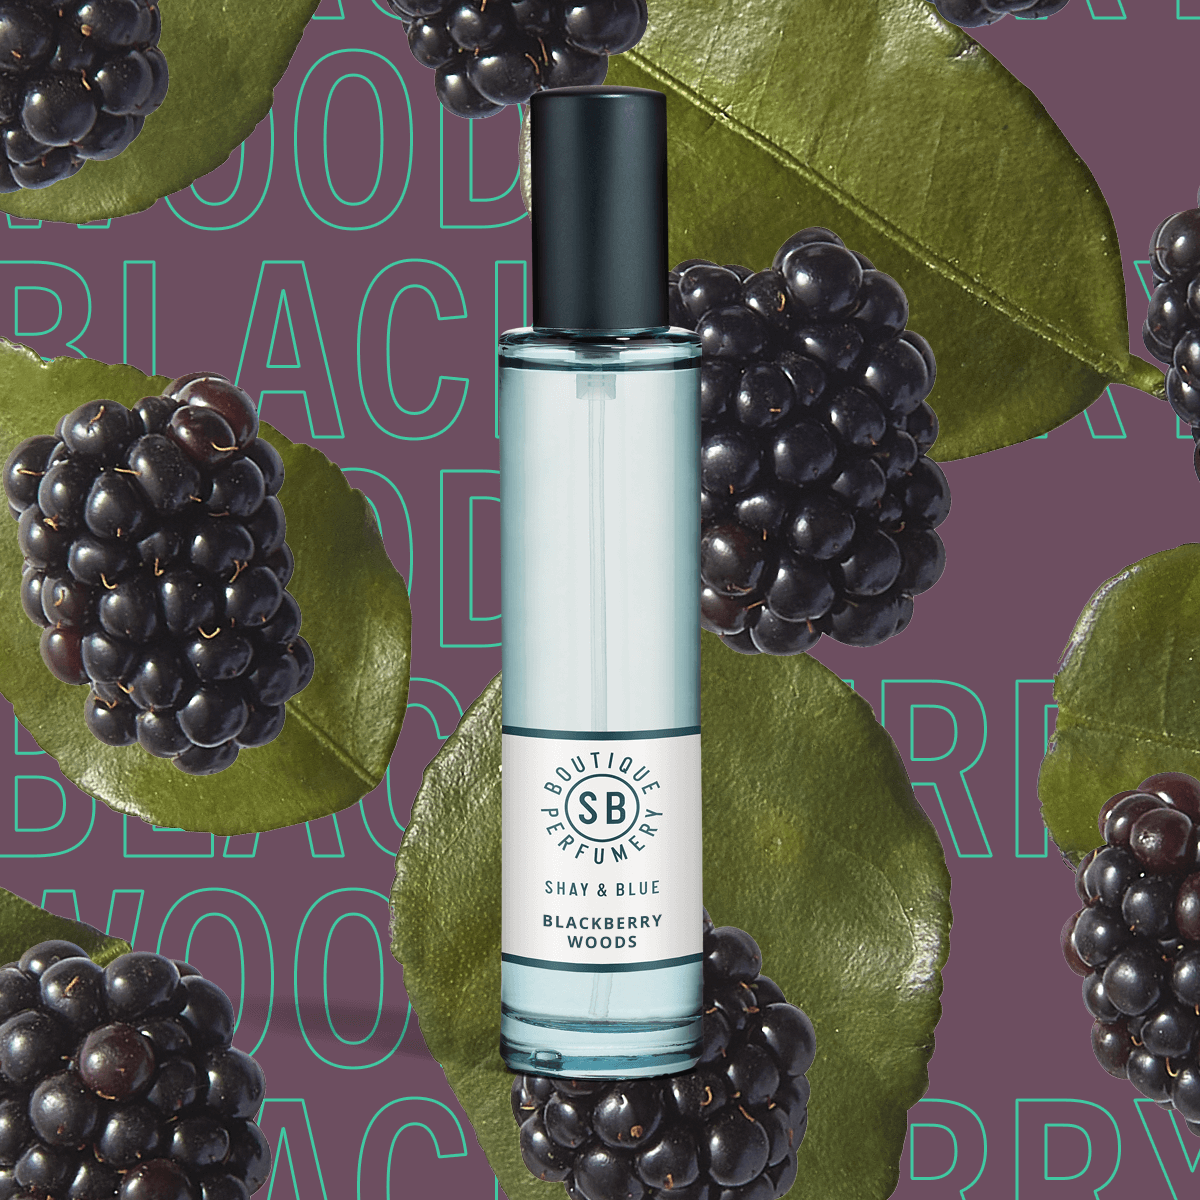 Blackberry Woods Fragrance 30ml | Glossy berry juice with punk-sharp citrus. | Clean All Gender Fragrance | Shay & Blue